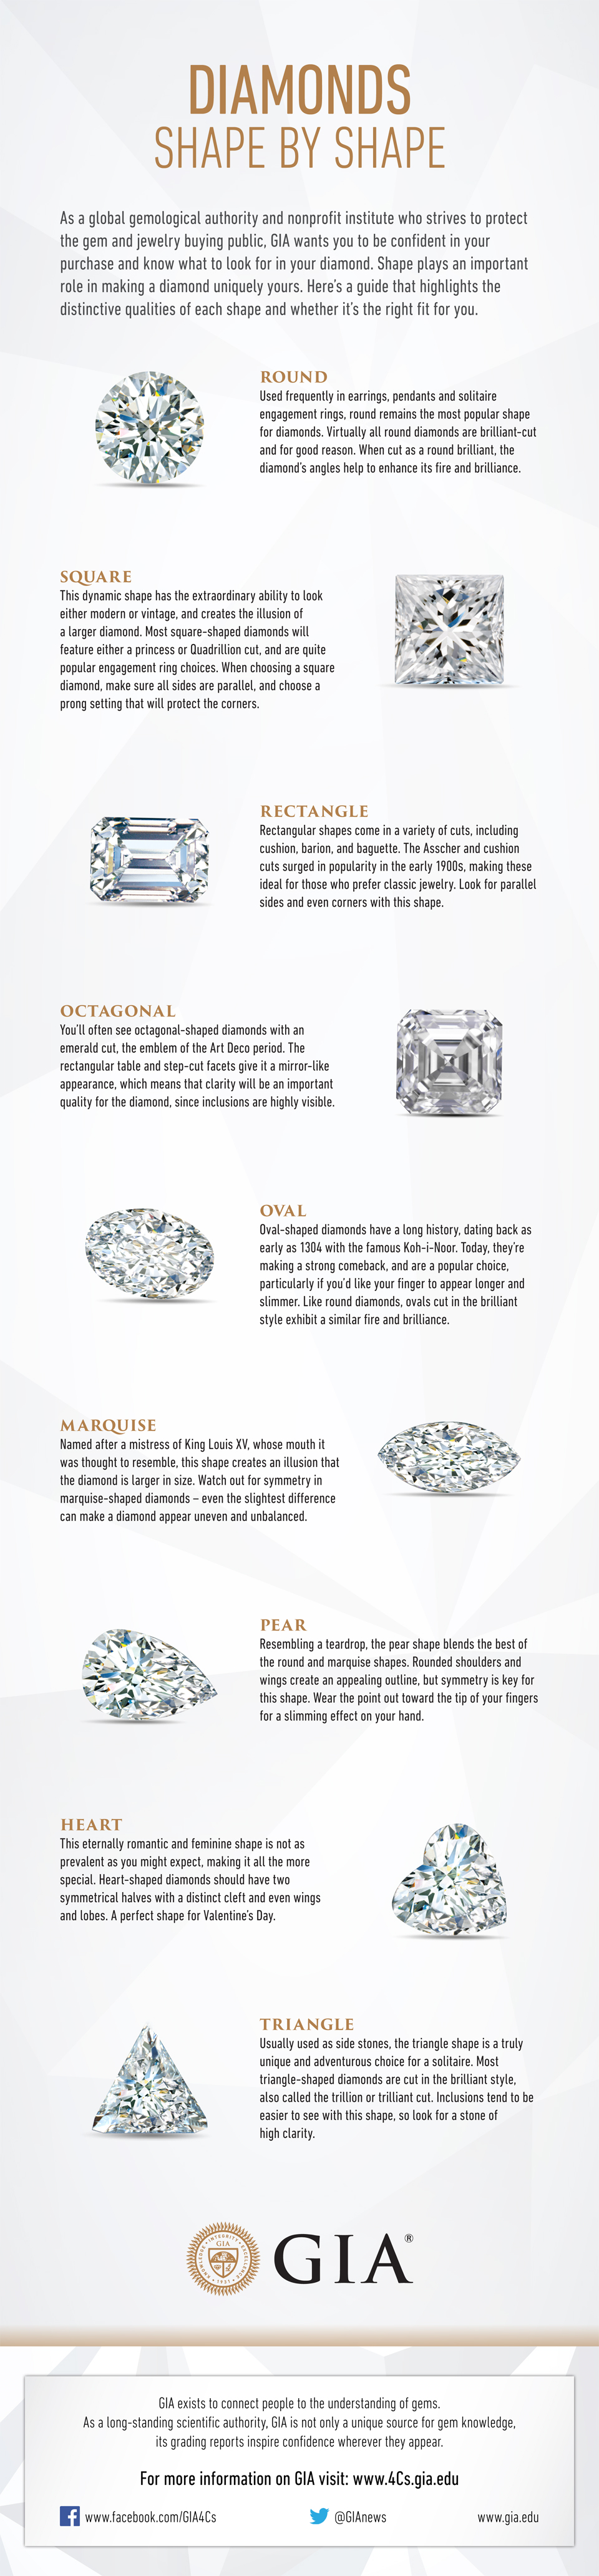 your color fancy llc diamond search heritage beauty in diamonds log rejuvenate davidoff hda grading natural